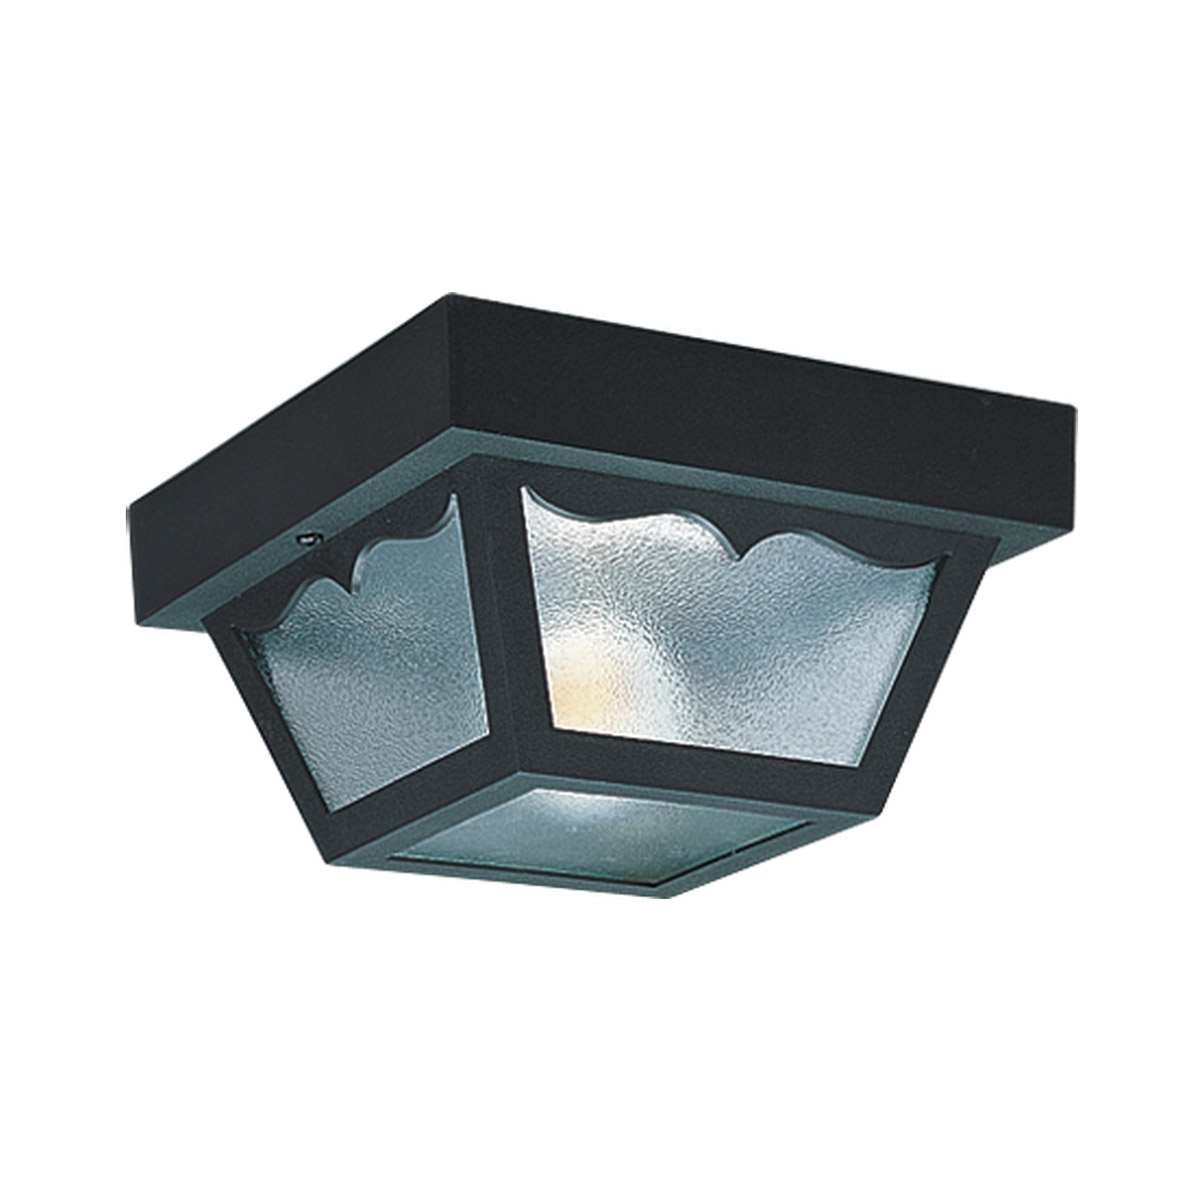 Sea Gull 7569-32 Signature 2 Light 10 inch Clear Outdoor Ceiling Fixture in Black photo